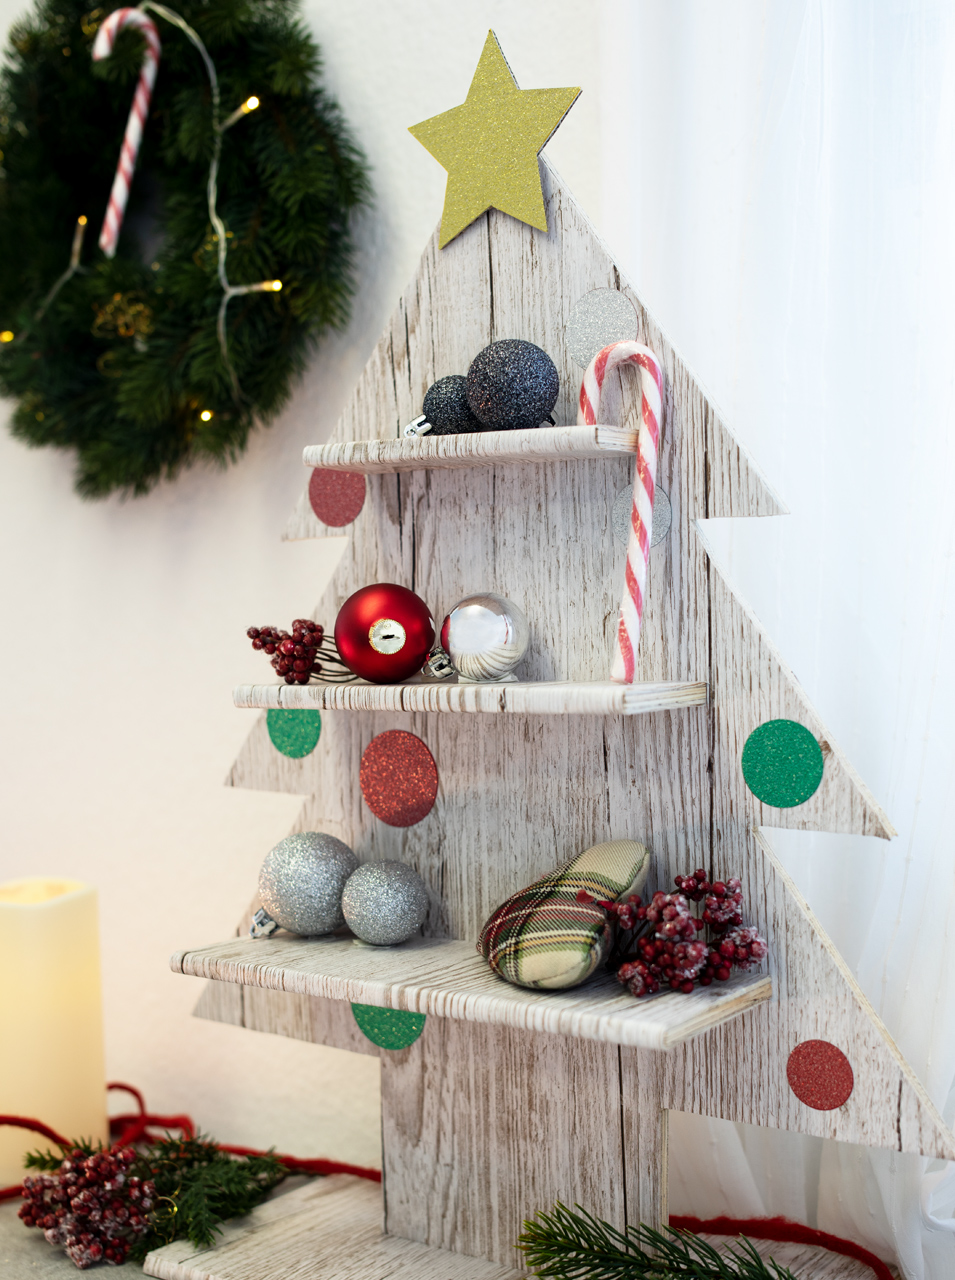 Decorative DIY wooden shelf in the shape of a Christmas tree designed with d-c-fix® foil in a wood look.